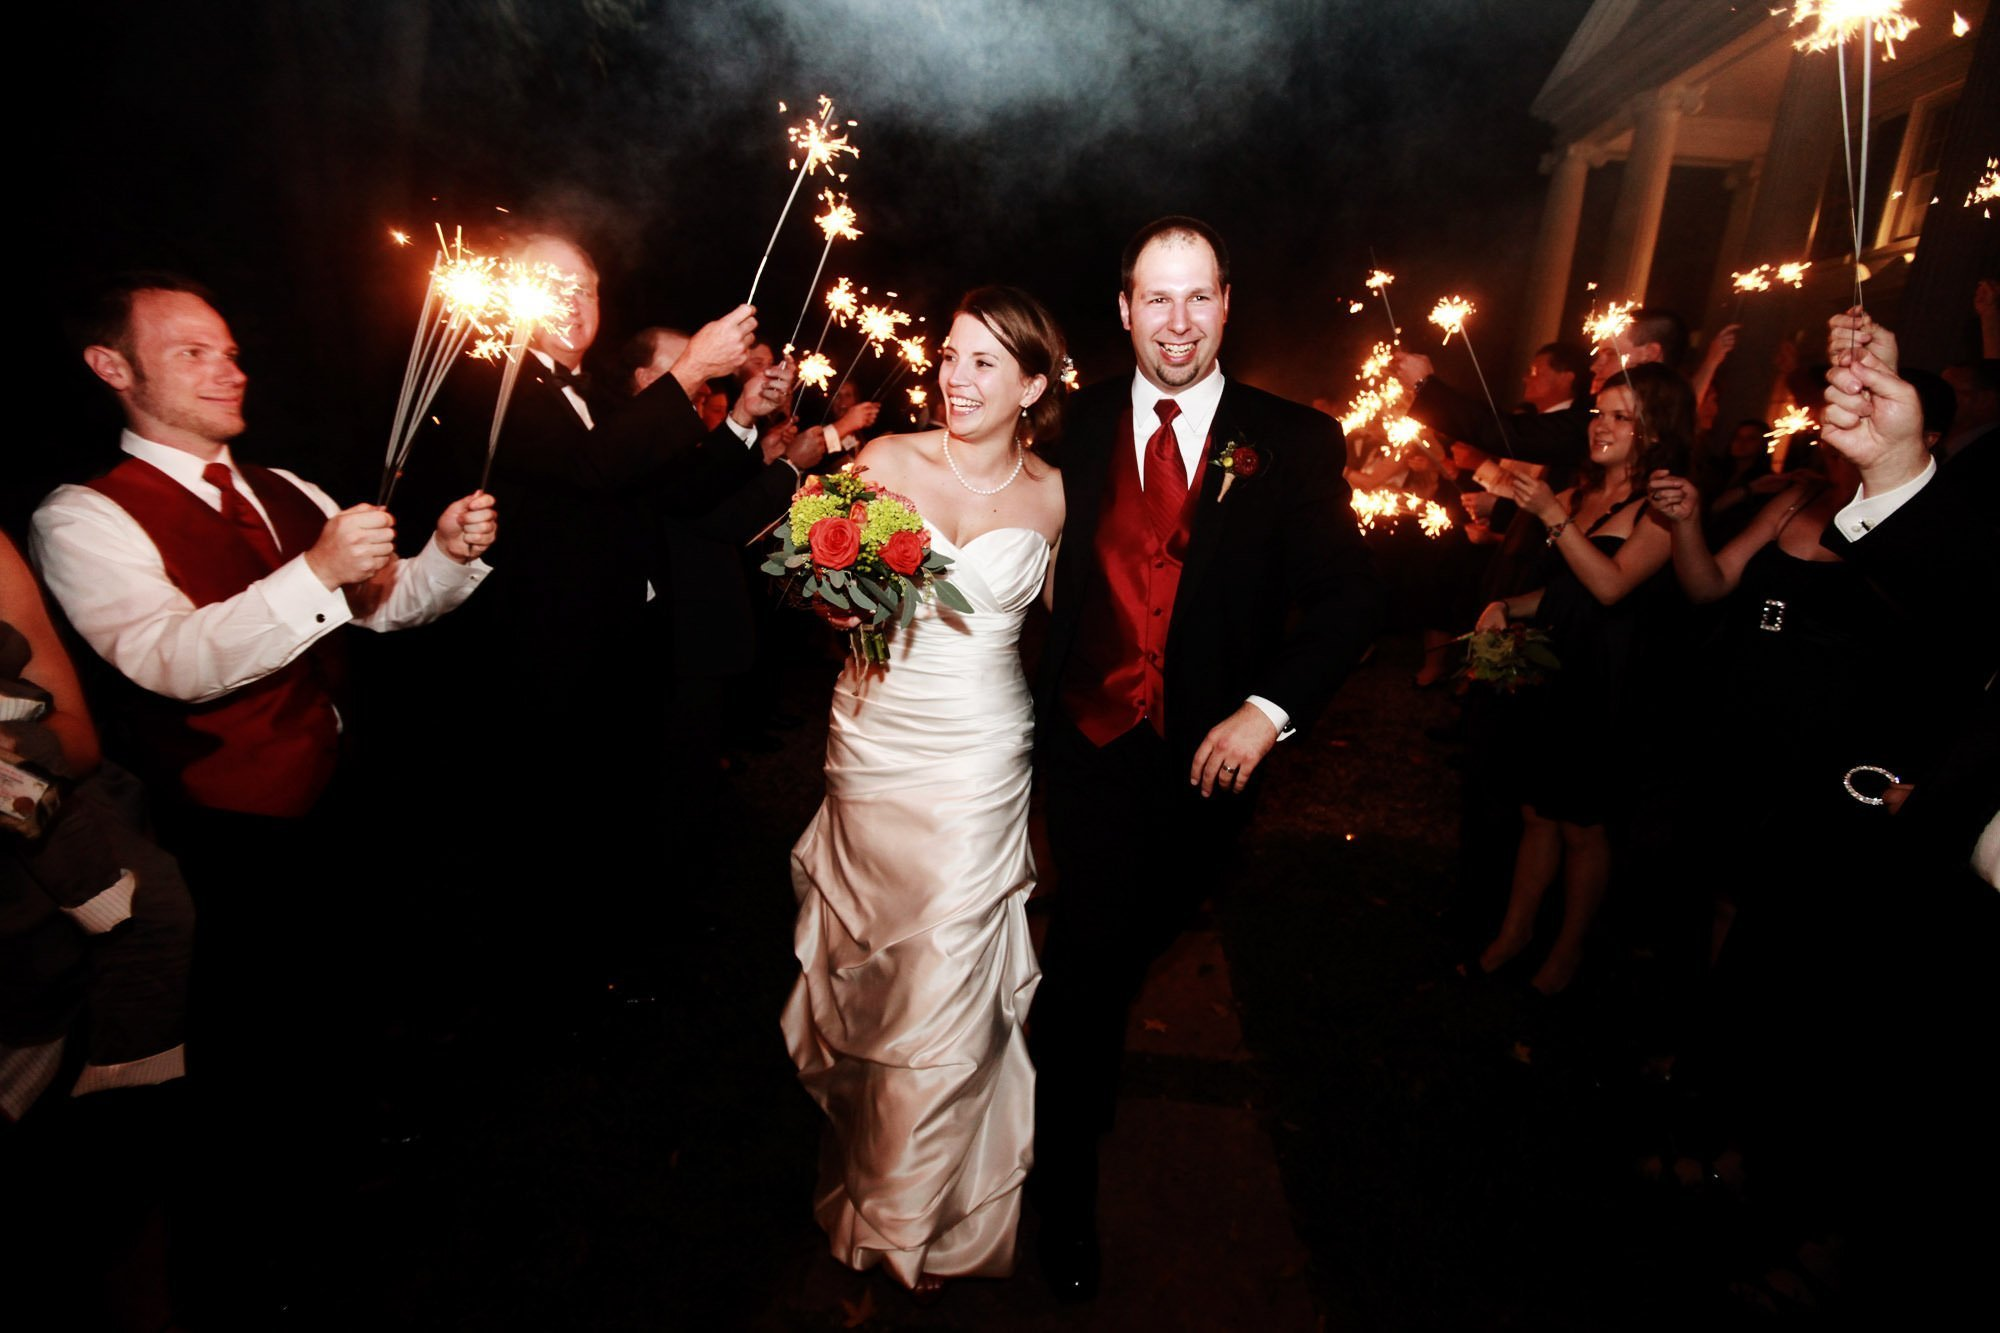 The bride and groom walk through their sparkler sendoff following their Whitehall Estate wedding.